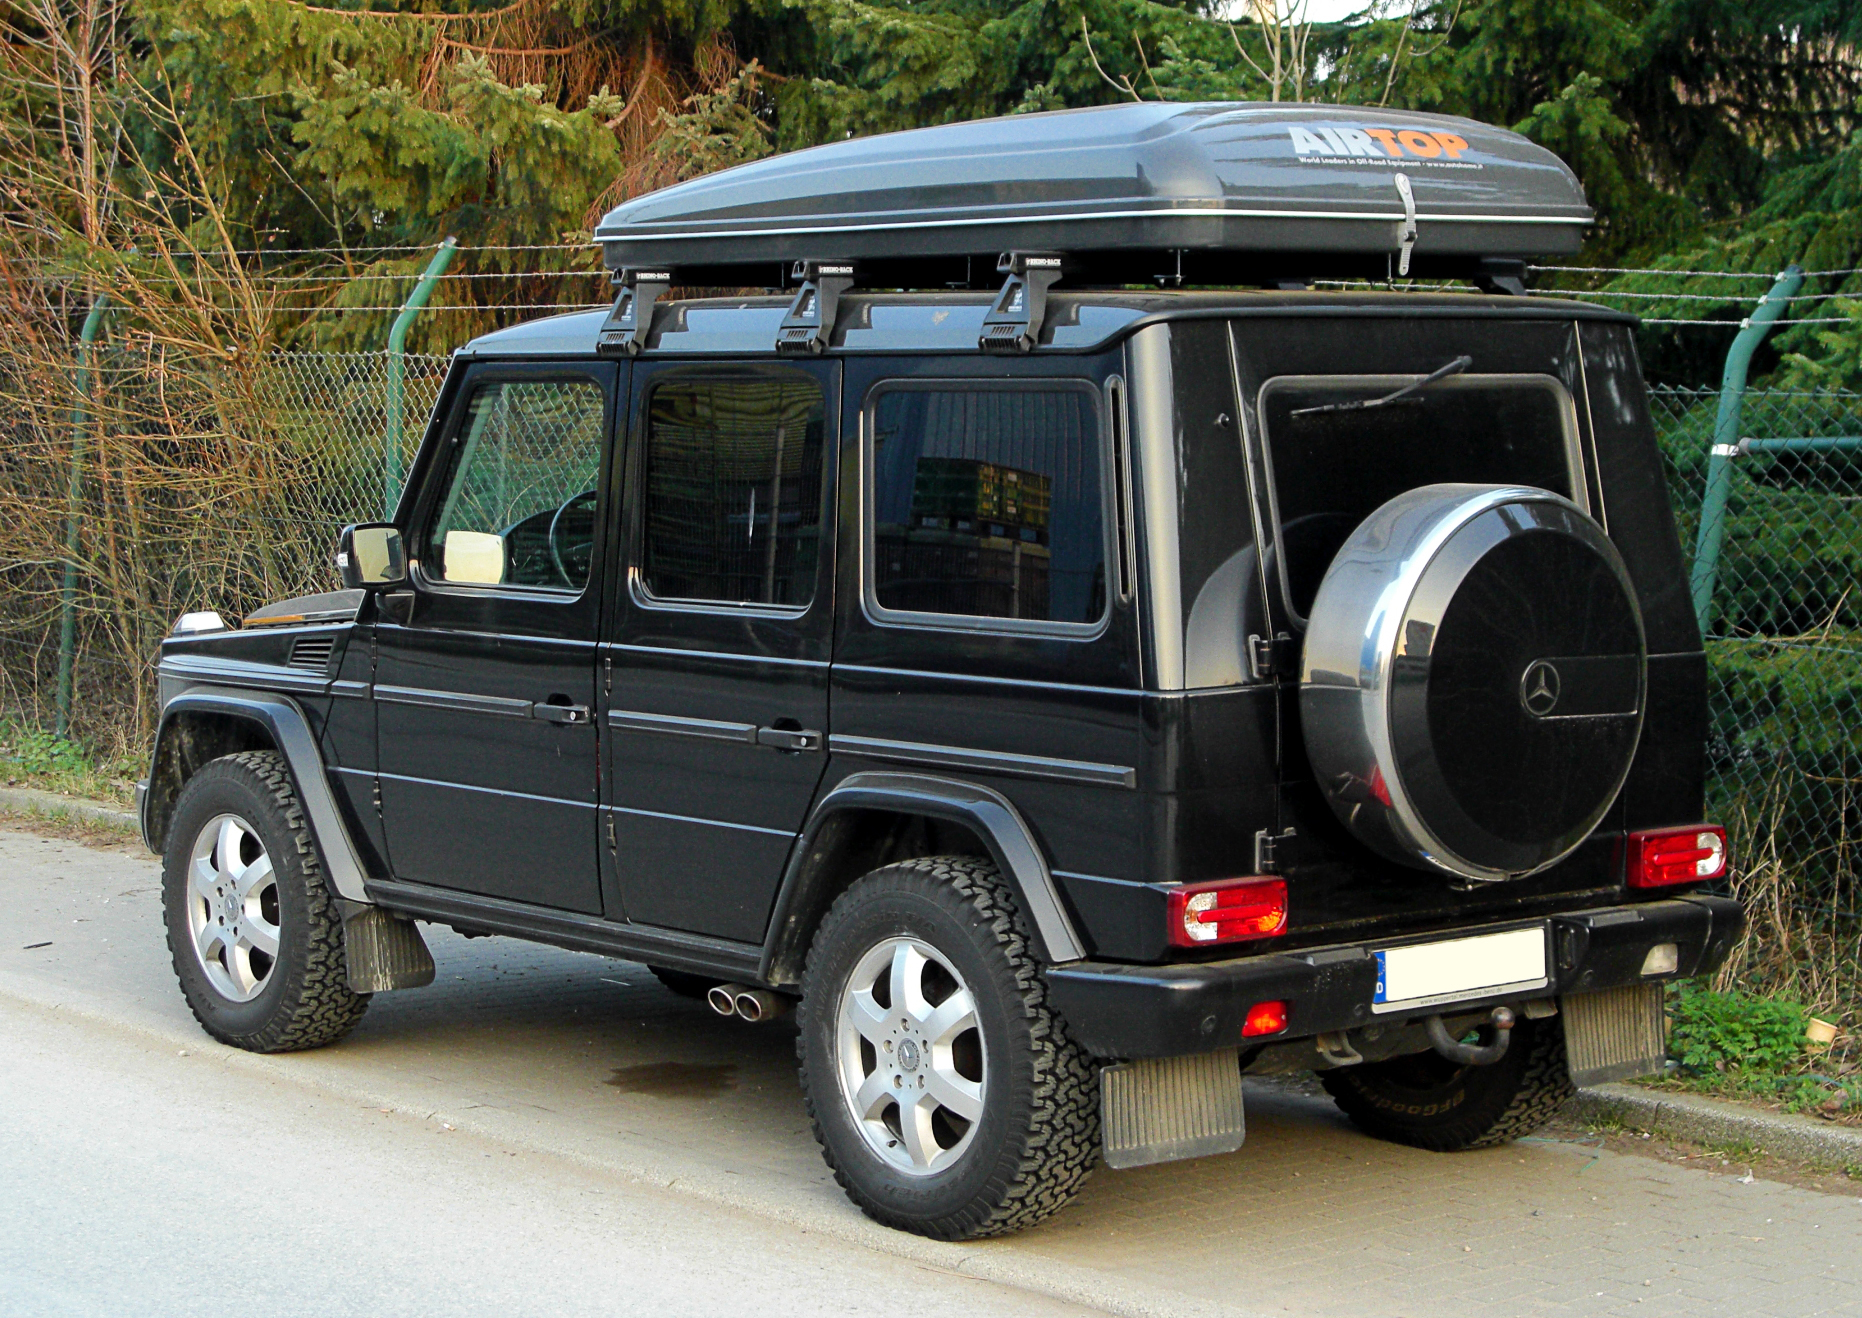 Description Mercedes-Benz G 320 CDI (W 463, Facelift) – Heckansicht ...